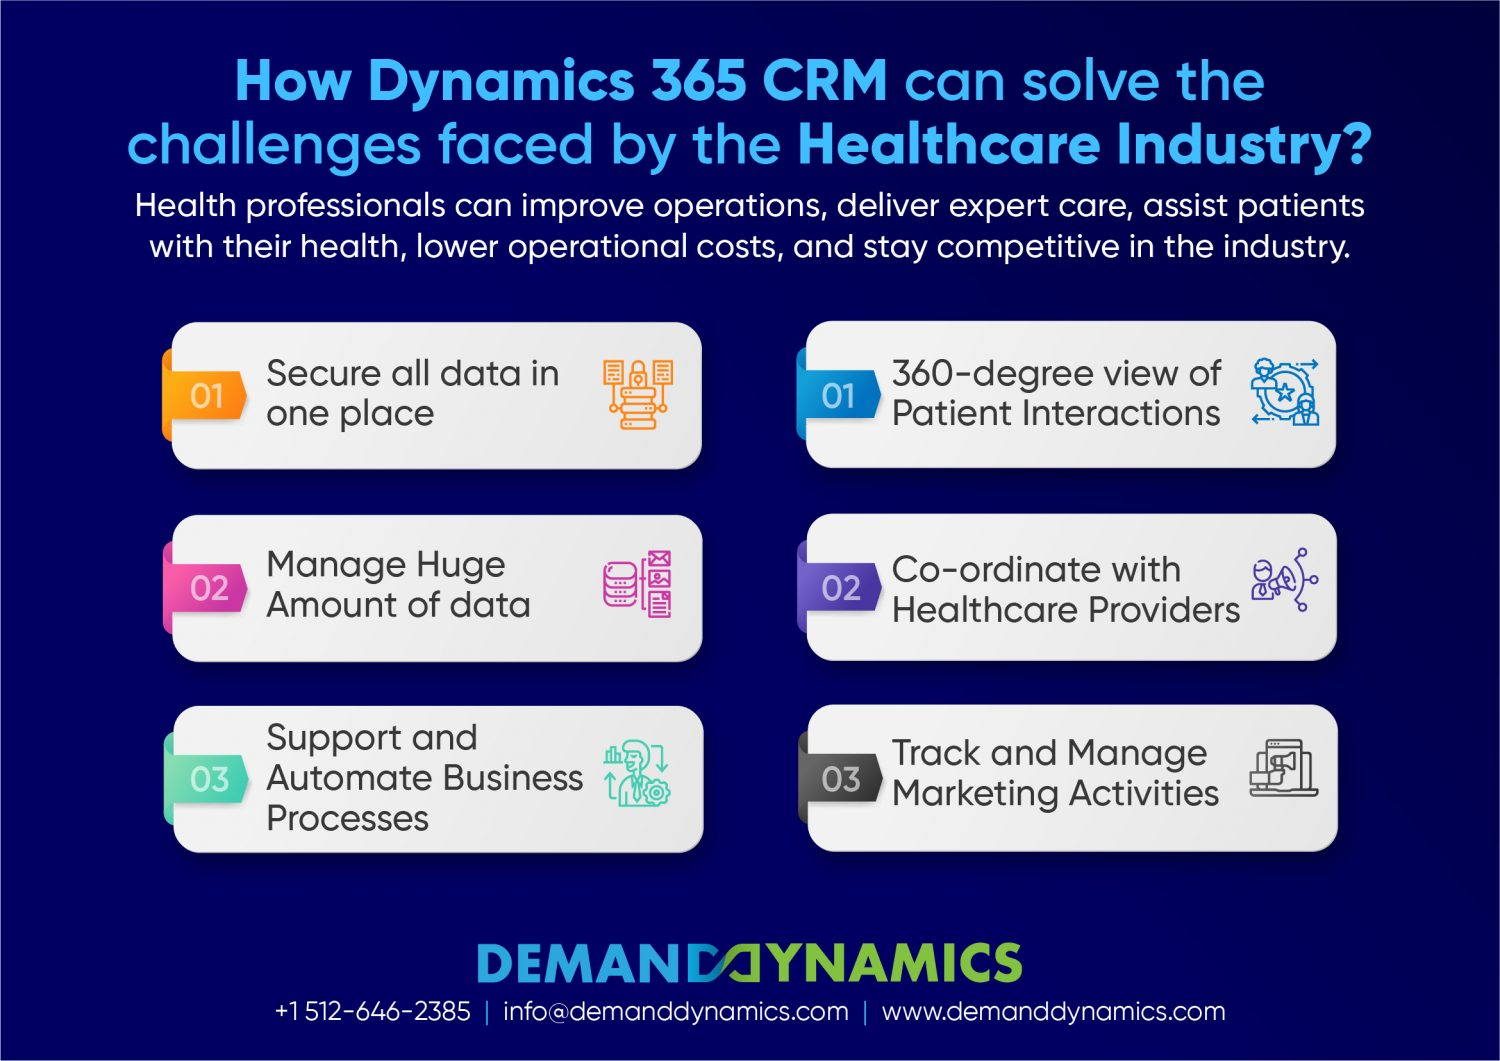 Dynamics 365 for Healthcare